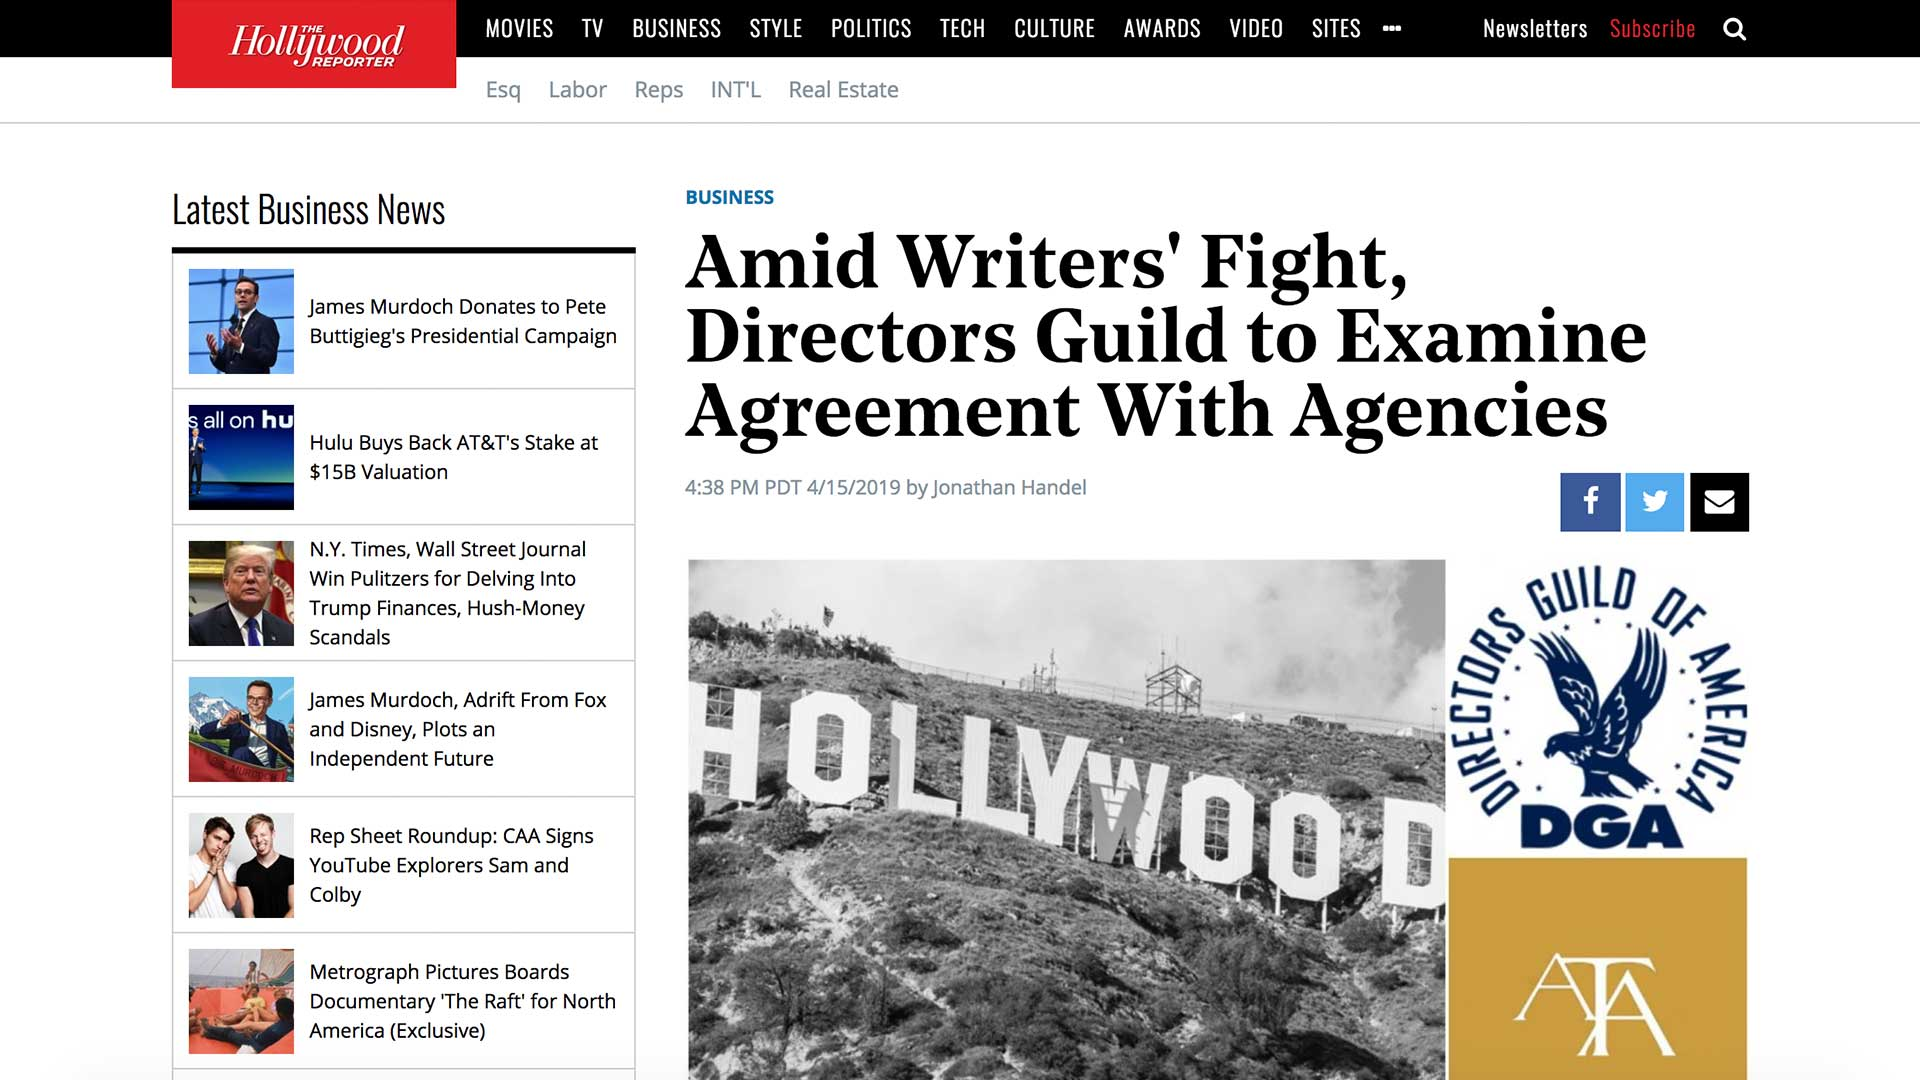 Fairness Rocks News Amid Writers' Fight, Directors Guild to Examine Agreement With Agencies